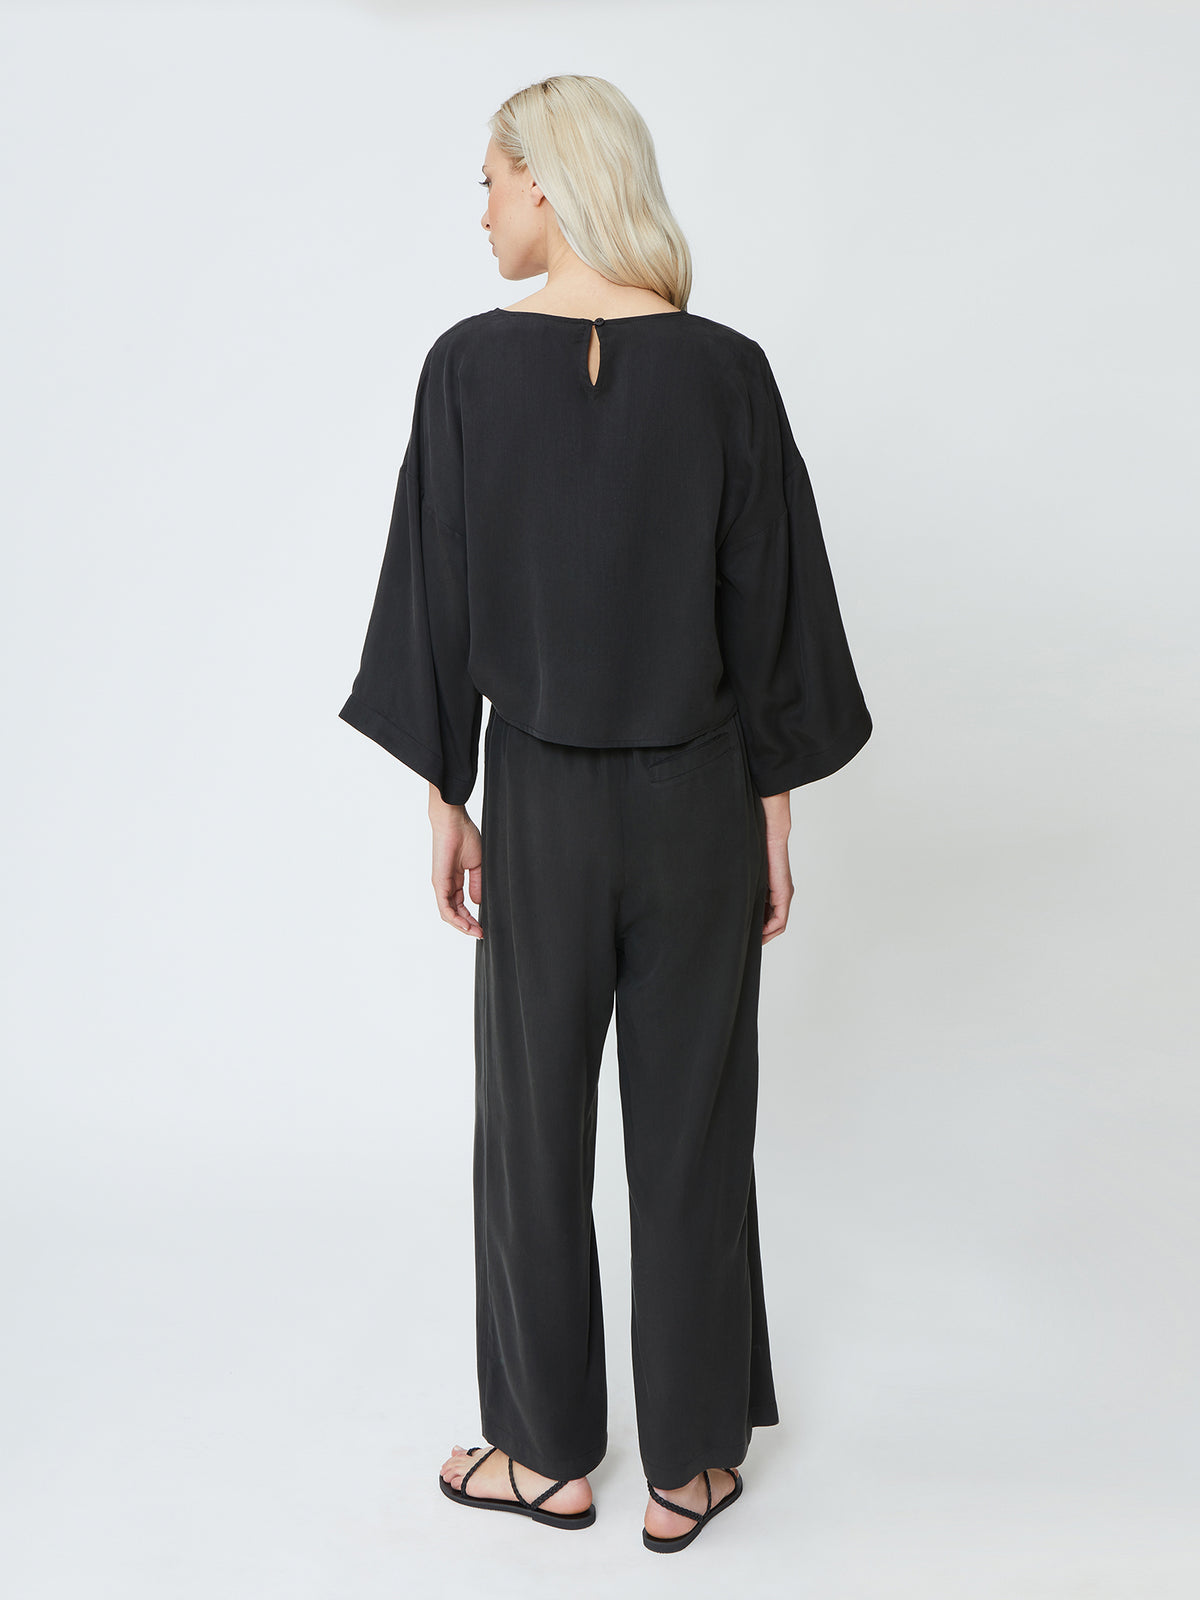 Alicante Top - Black